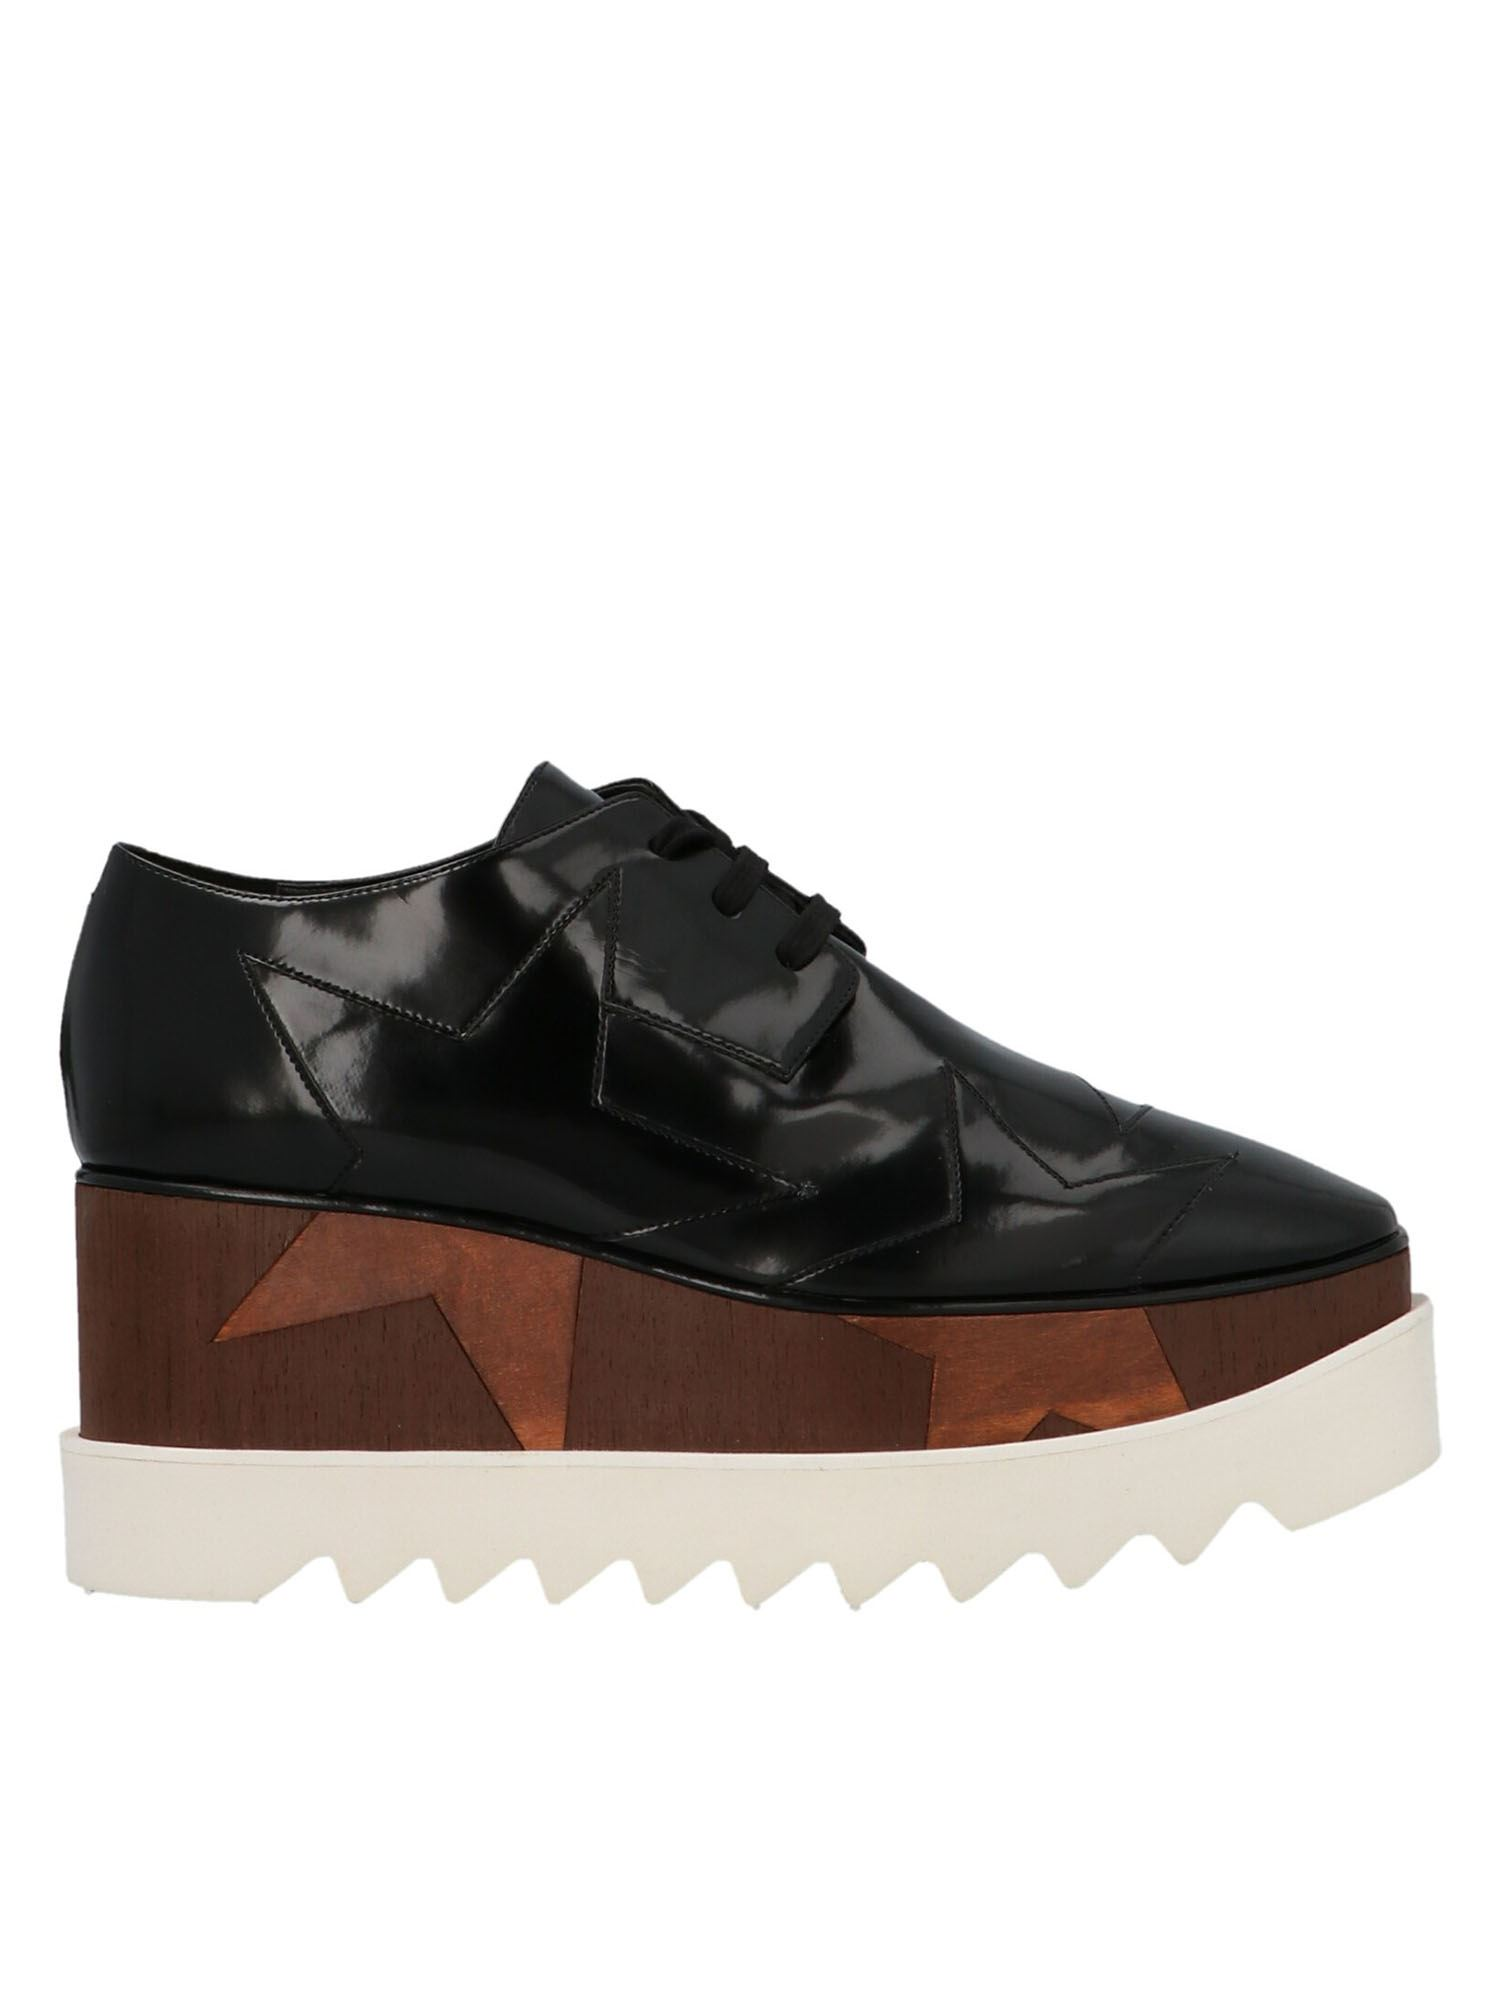 STELLA MCCARTNEY STELLA MCCARTNEY ELYSE STARS PLATFORM SHOES IN BLACK